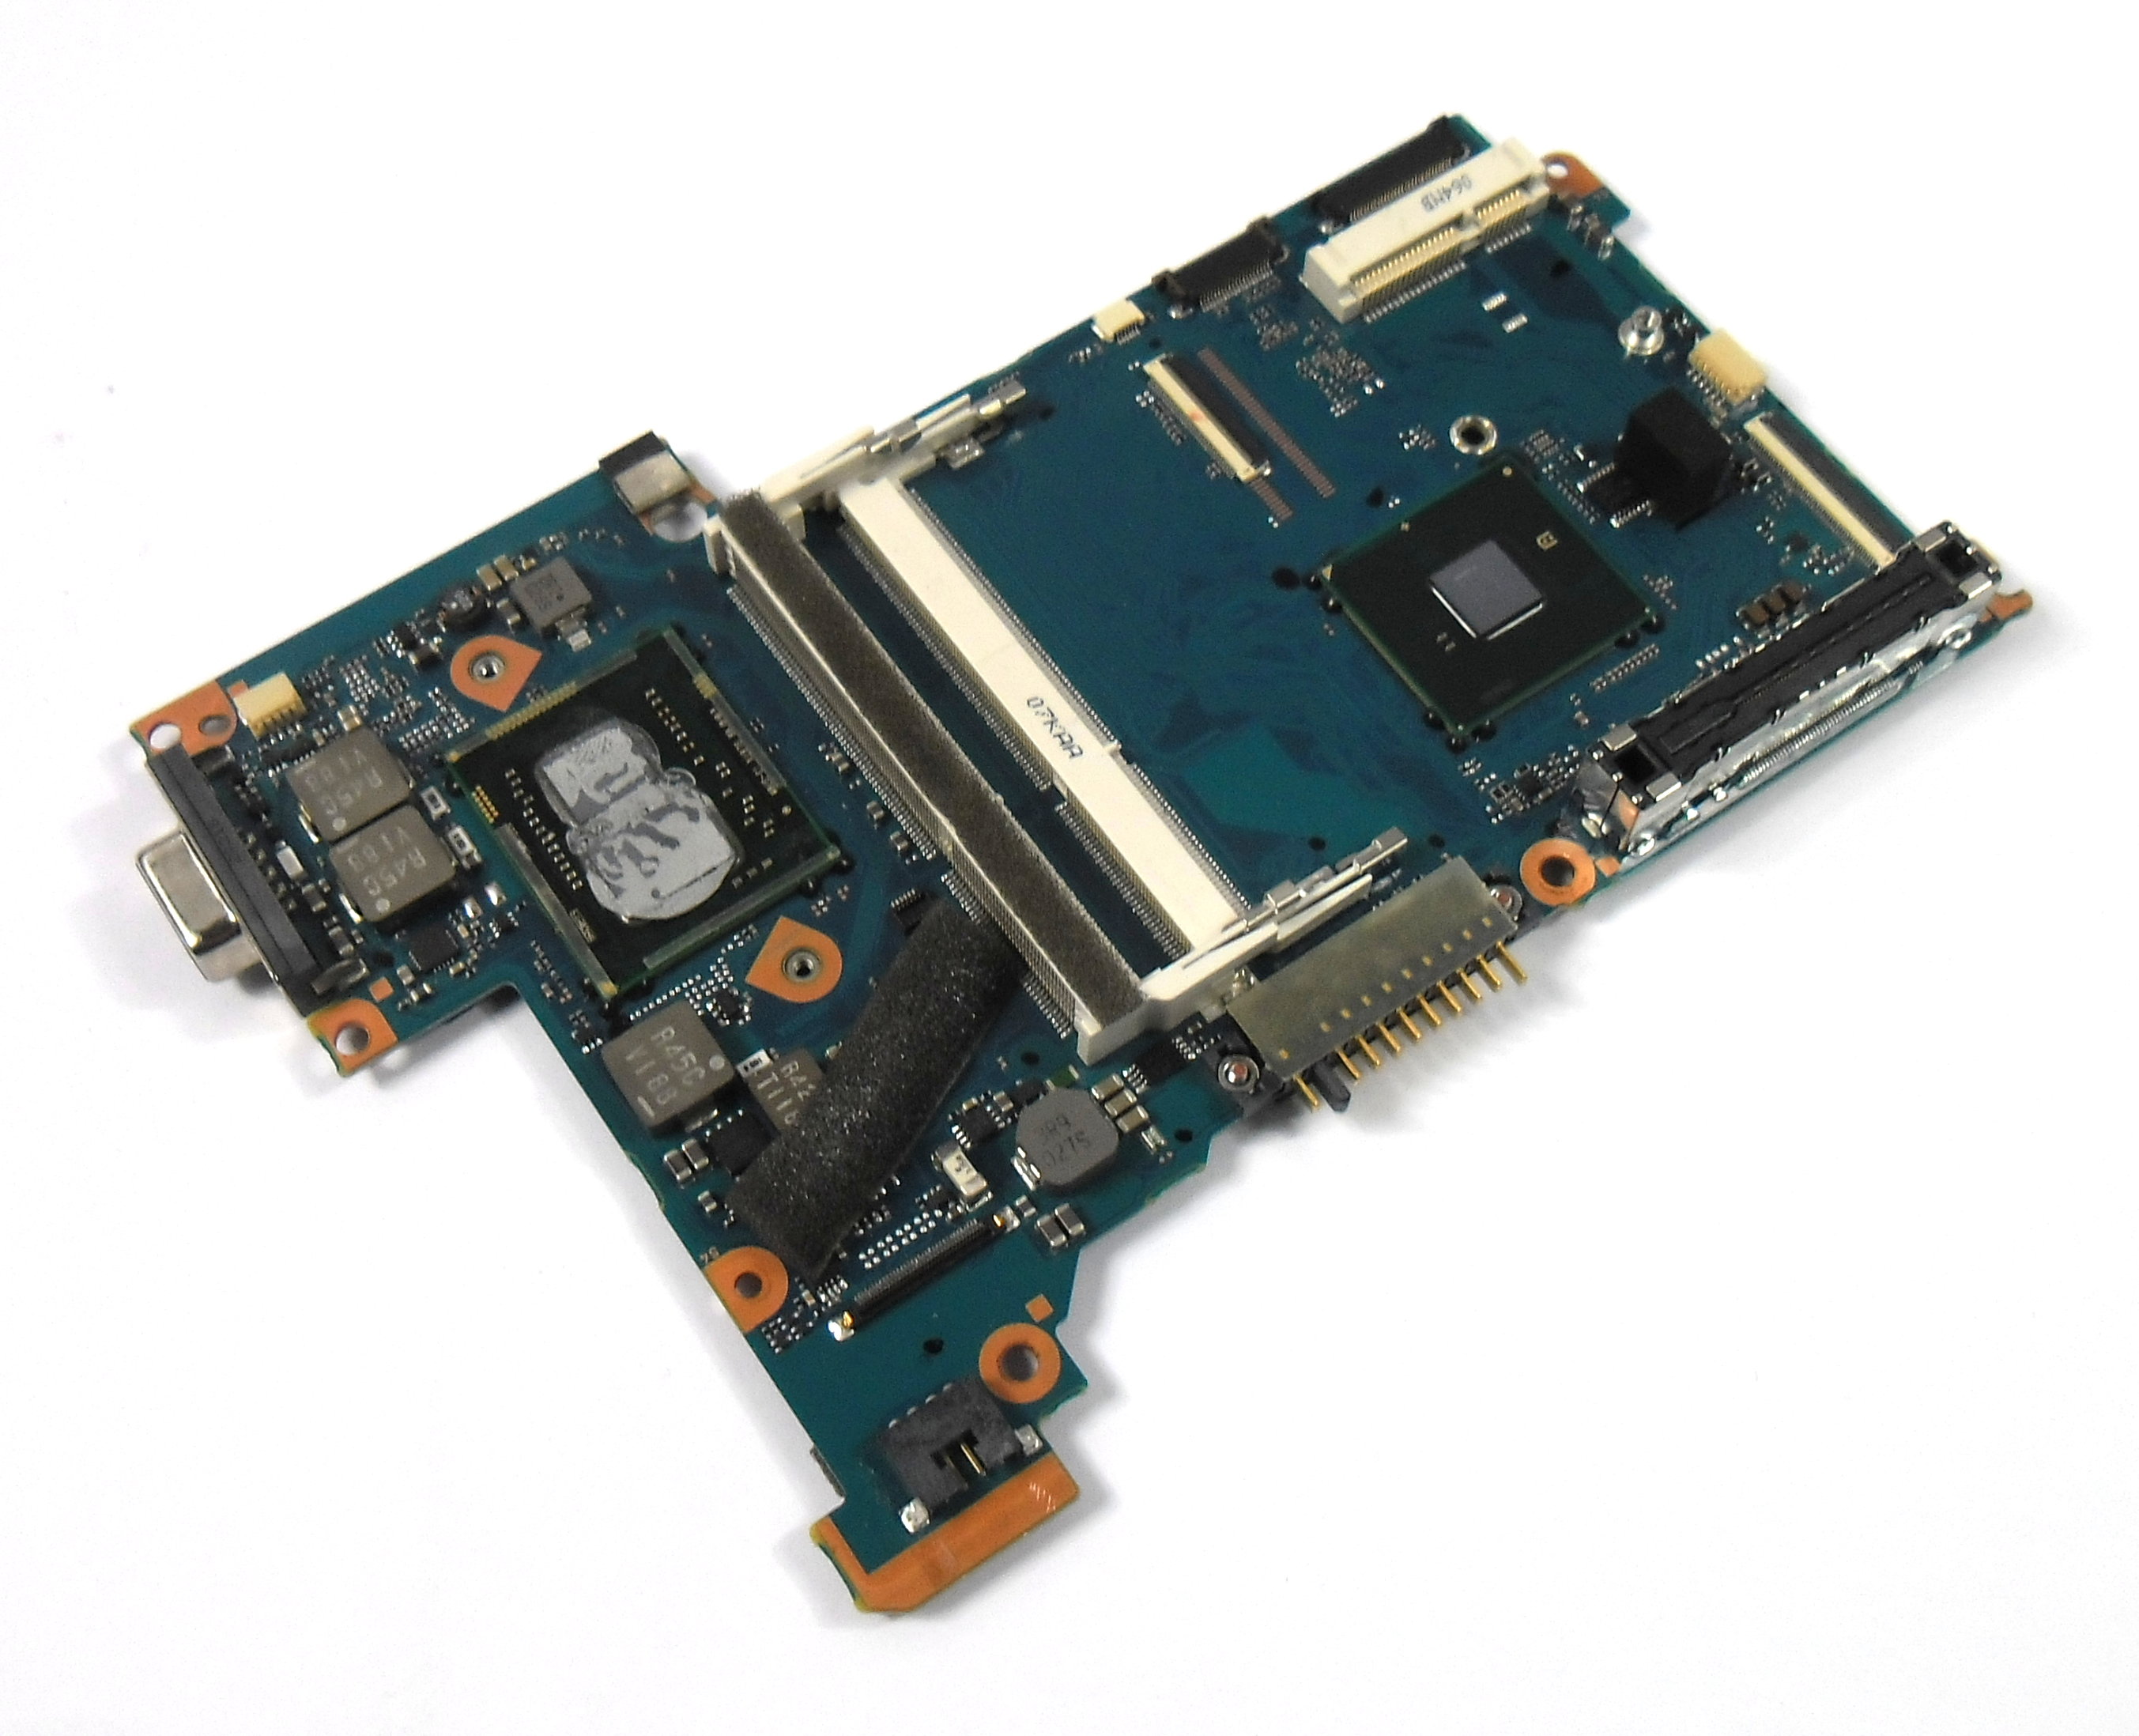 Toshiba FULSY4 Portege R700 Laptop Motherboard with Intel i3-370M CPU